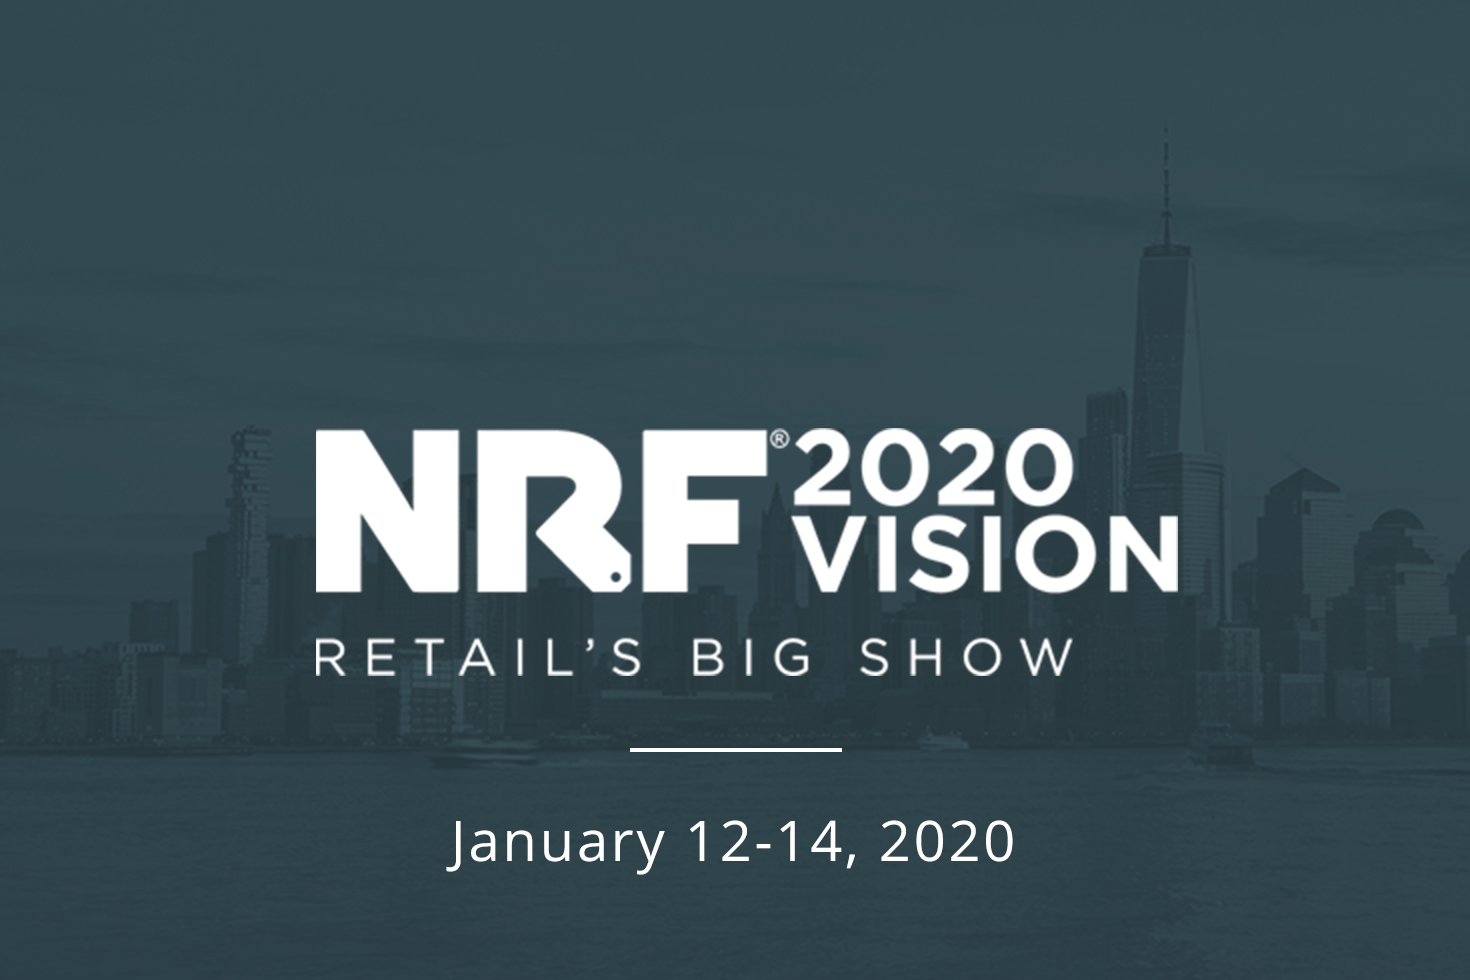 Nra Show 2020 Dallas.Events And Webinars Zenput